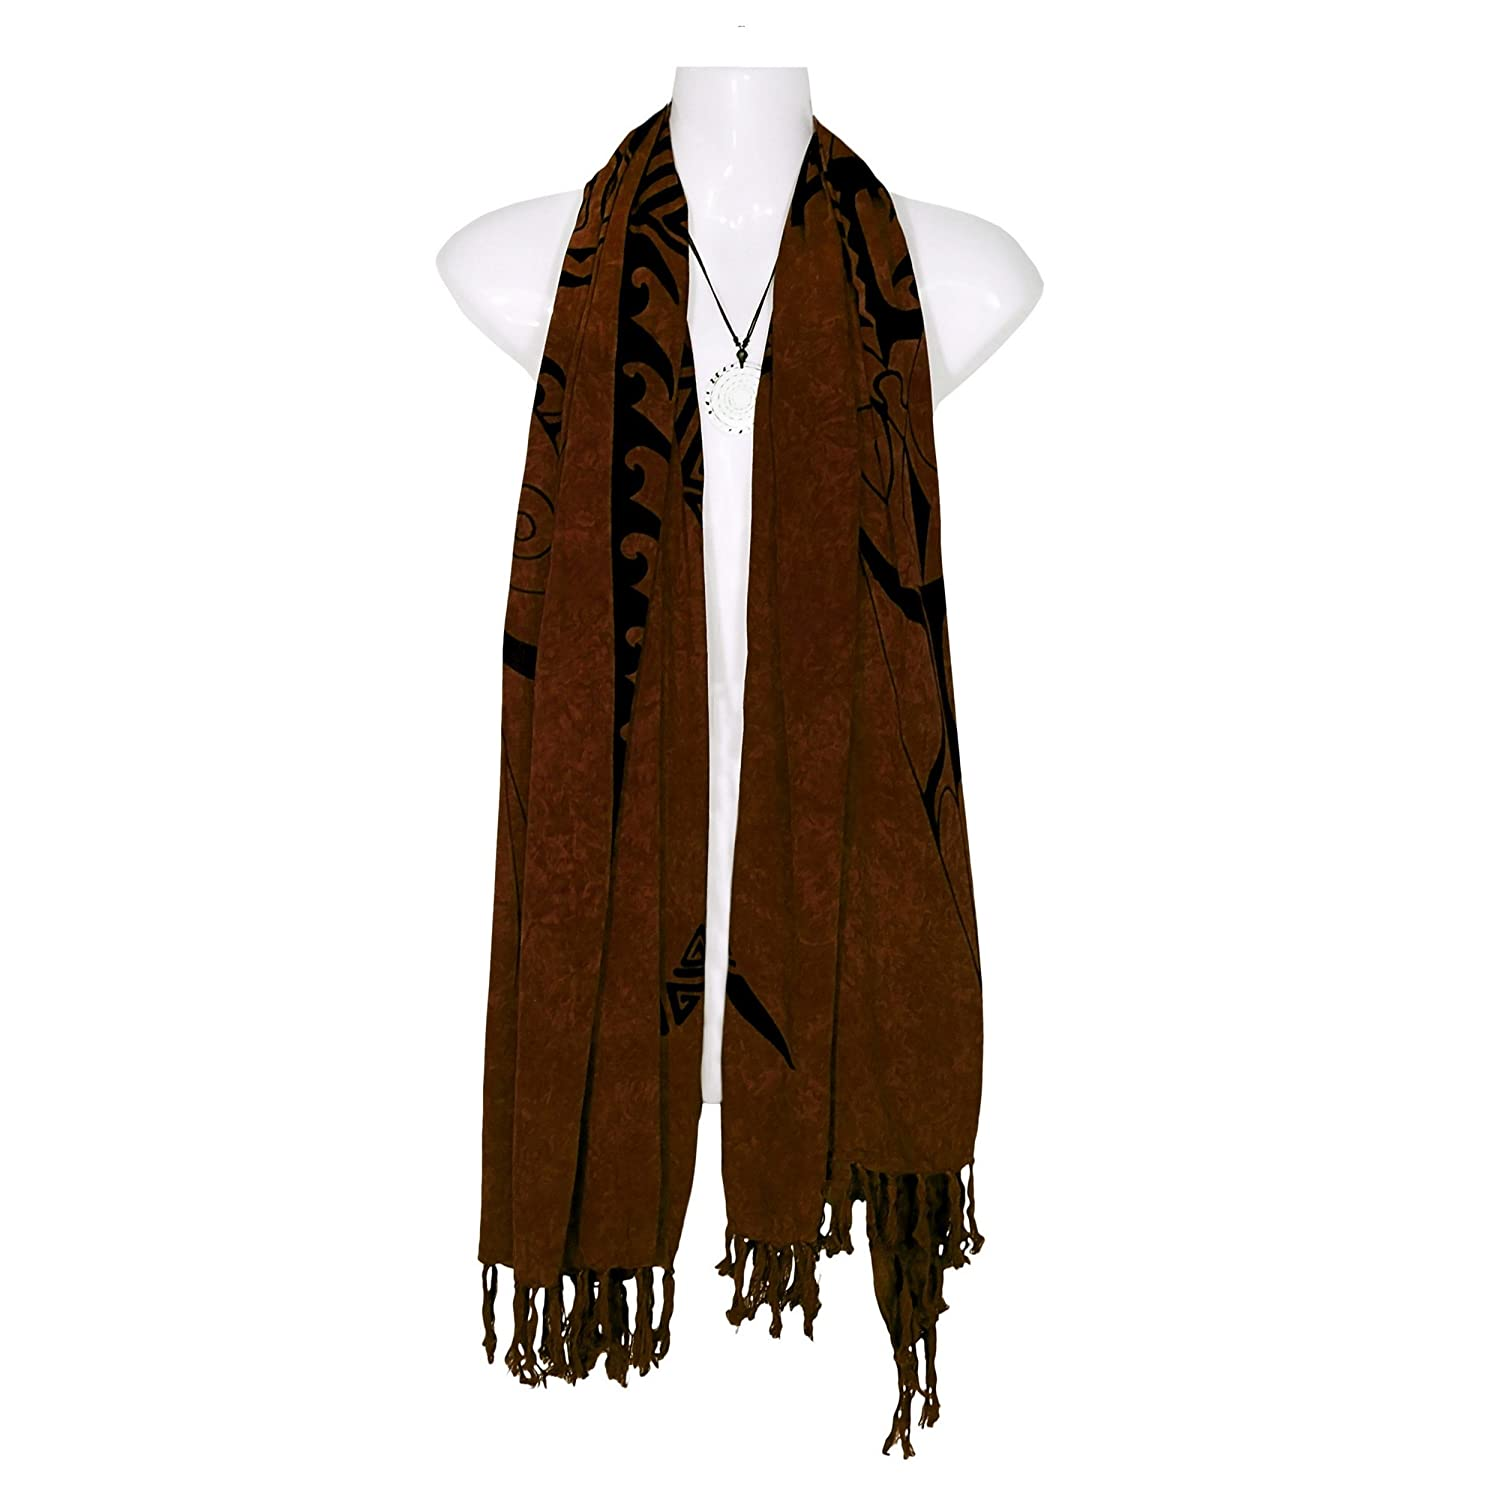 1WS Womens Tattoo Extra Wide Neck Scarf - in your choice of colors